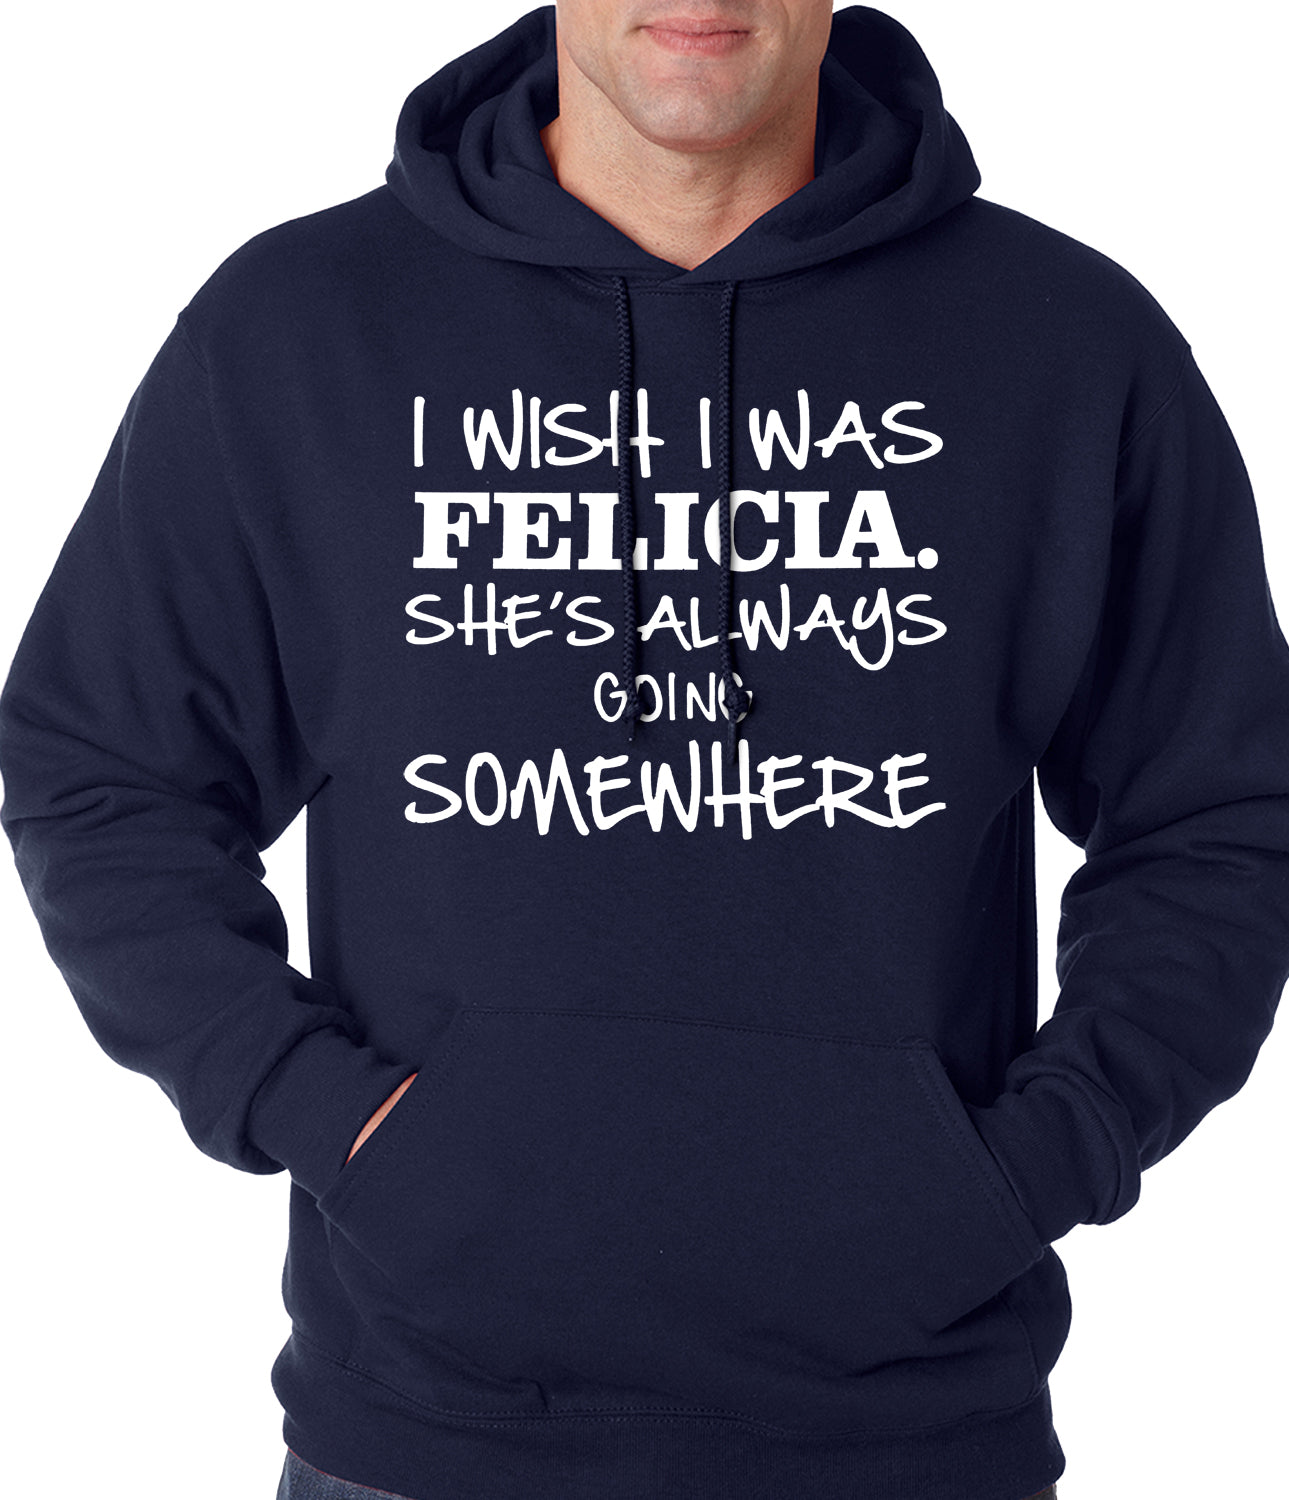 I Wish I Was Felicia. She's Always Going Somewhere Adult Hoodie